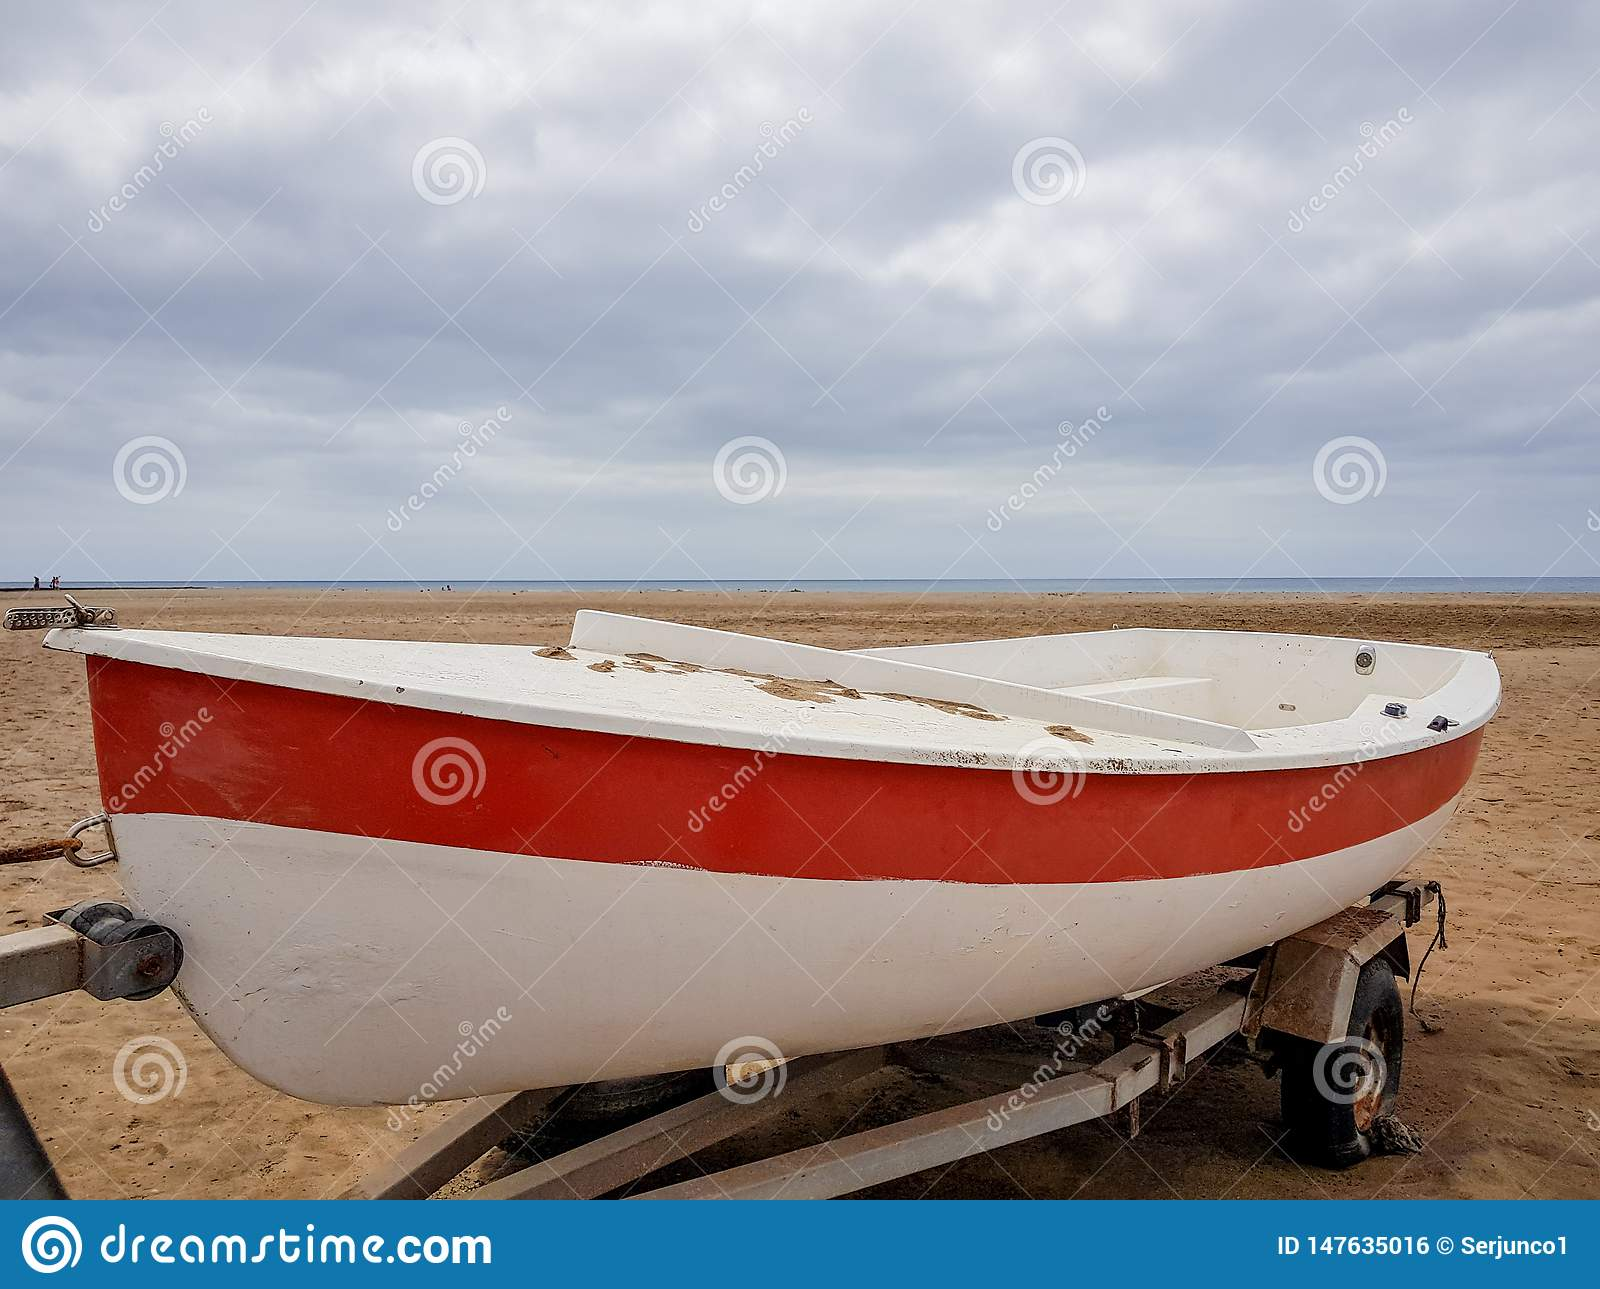 A Boat On Land With White And Red Paint Colors And On Its Extraction Trolley Stock Photo Image Of Fish Outdoor 147635016